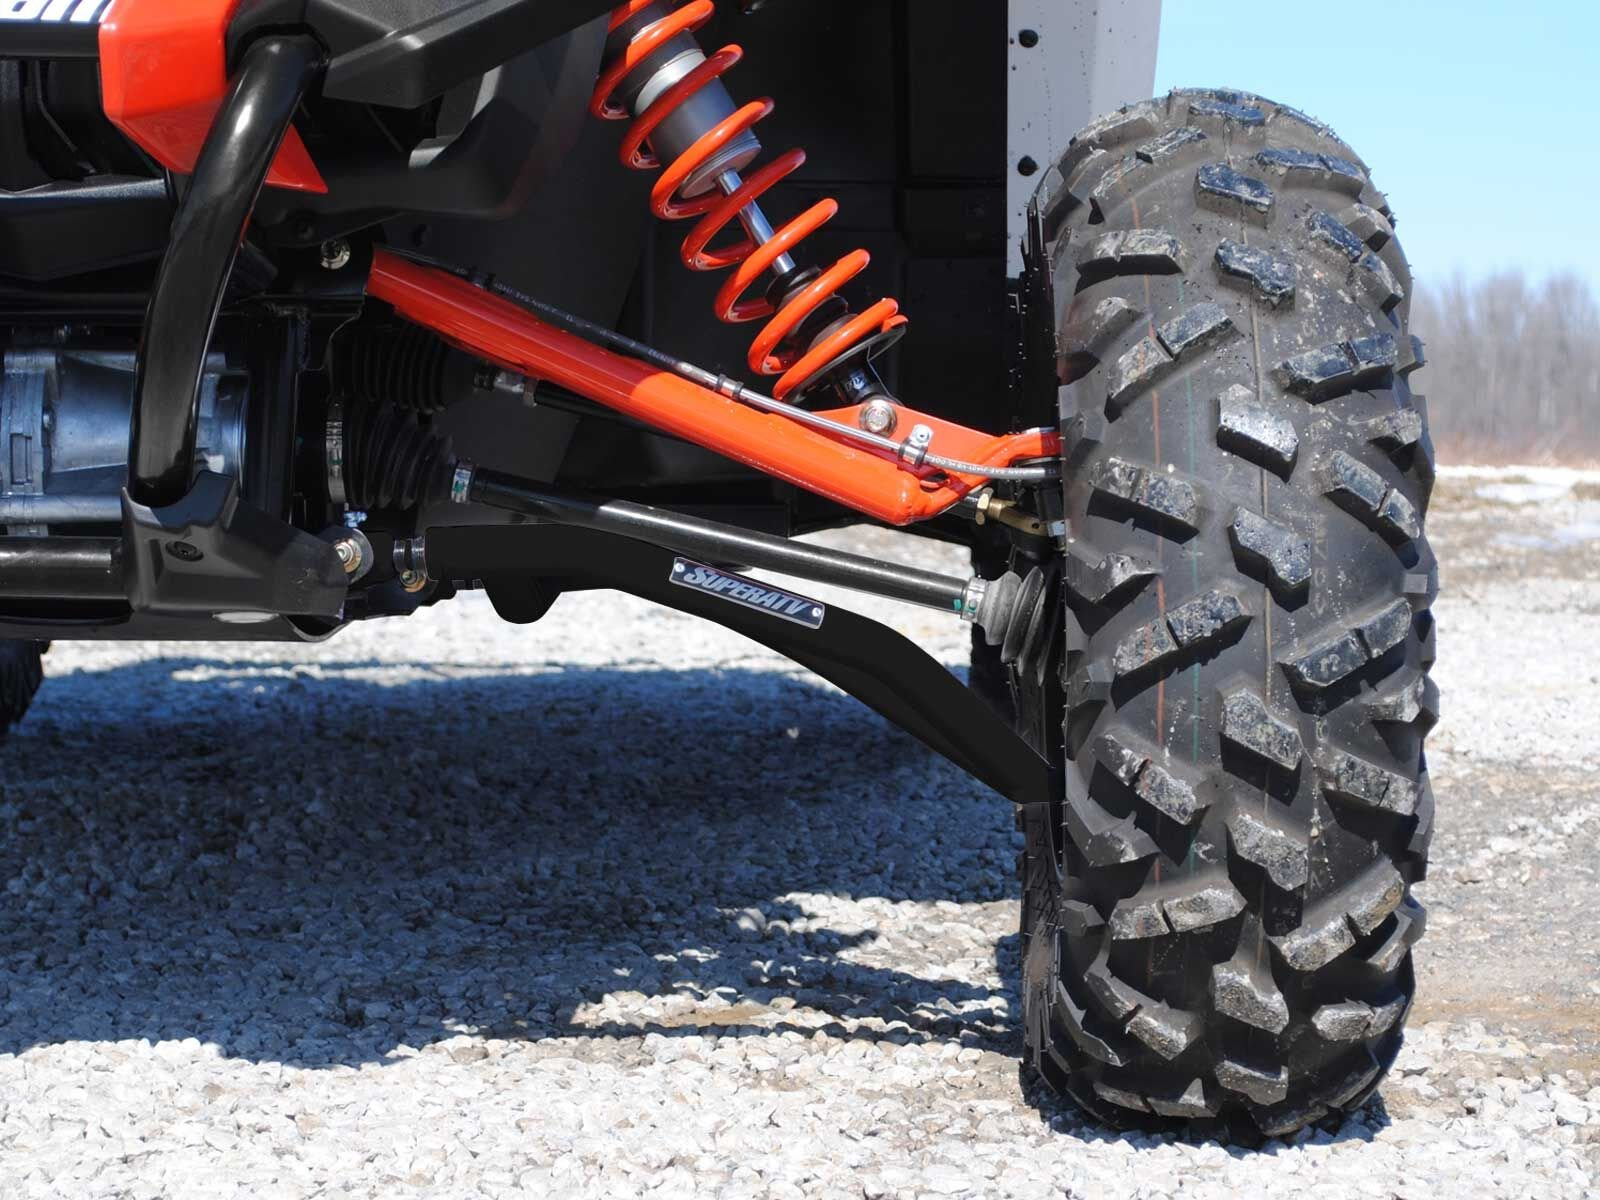 SuperATV High Clearance Front A-Arms for Can-Am Maverick DPS/XMR/XRS/MAX/Turbo (See Fitment) - Black by SuperATV.com (Image #2)